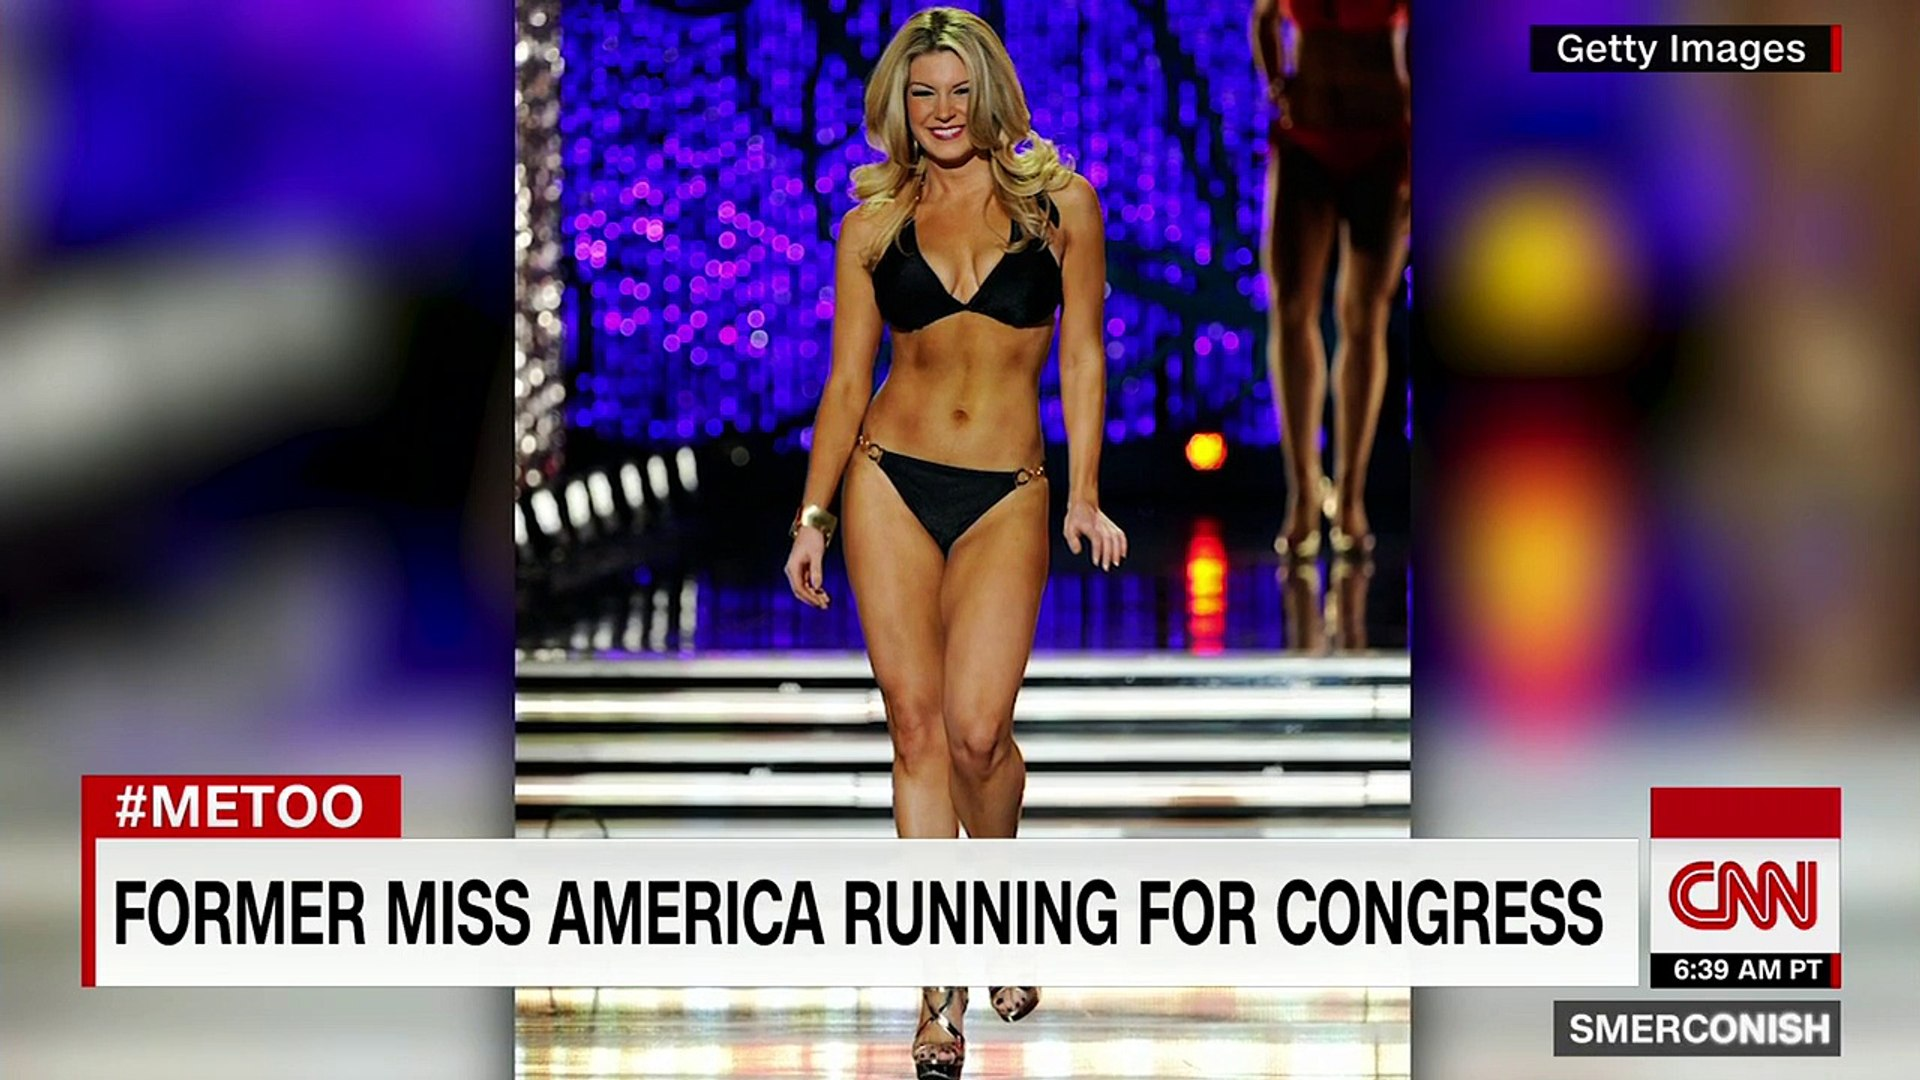 Miss America runs for Congress